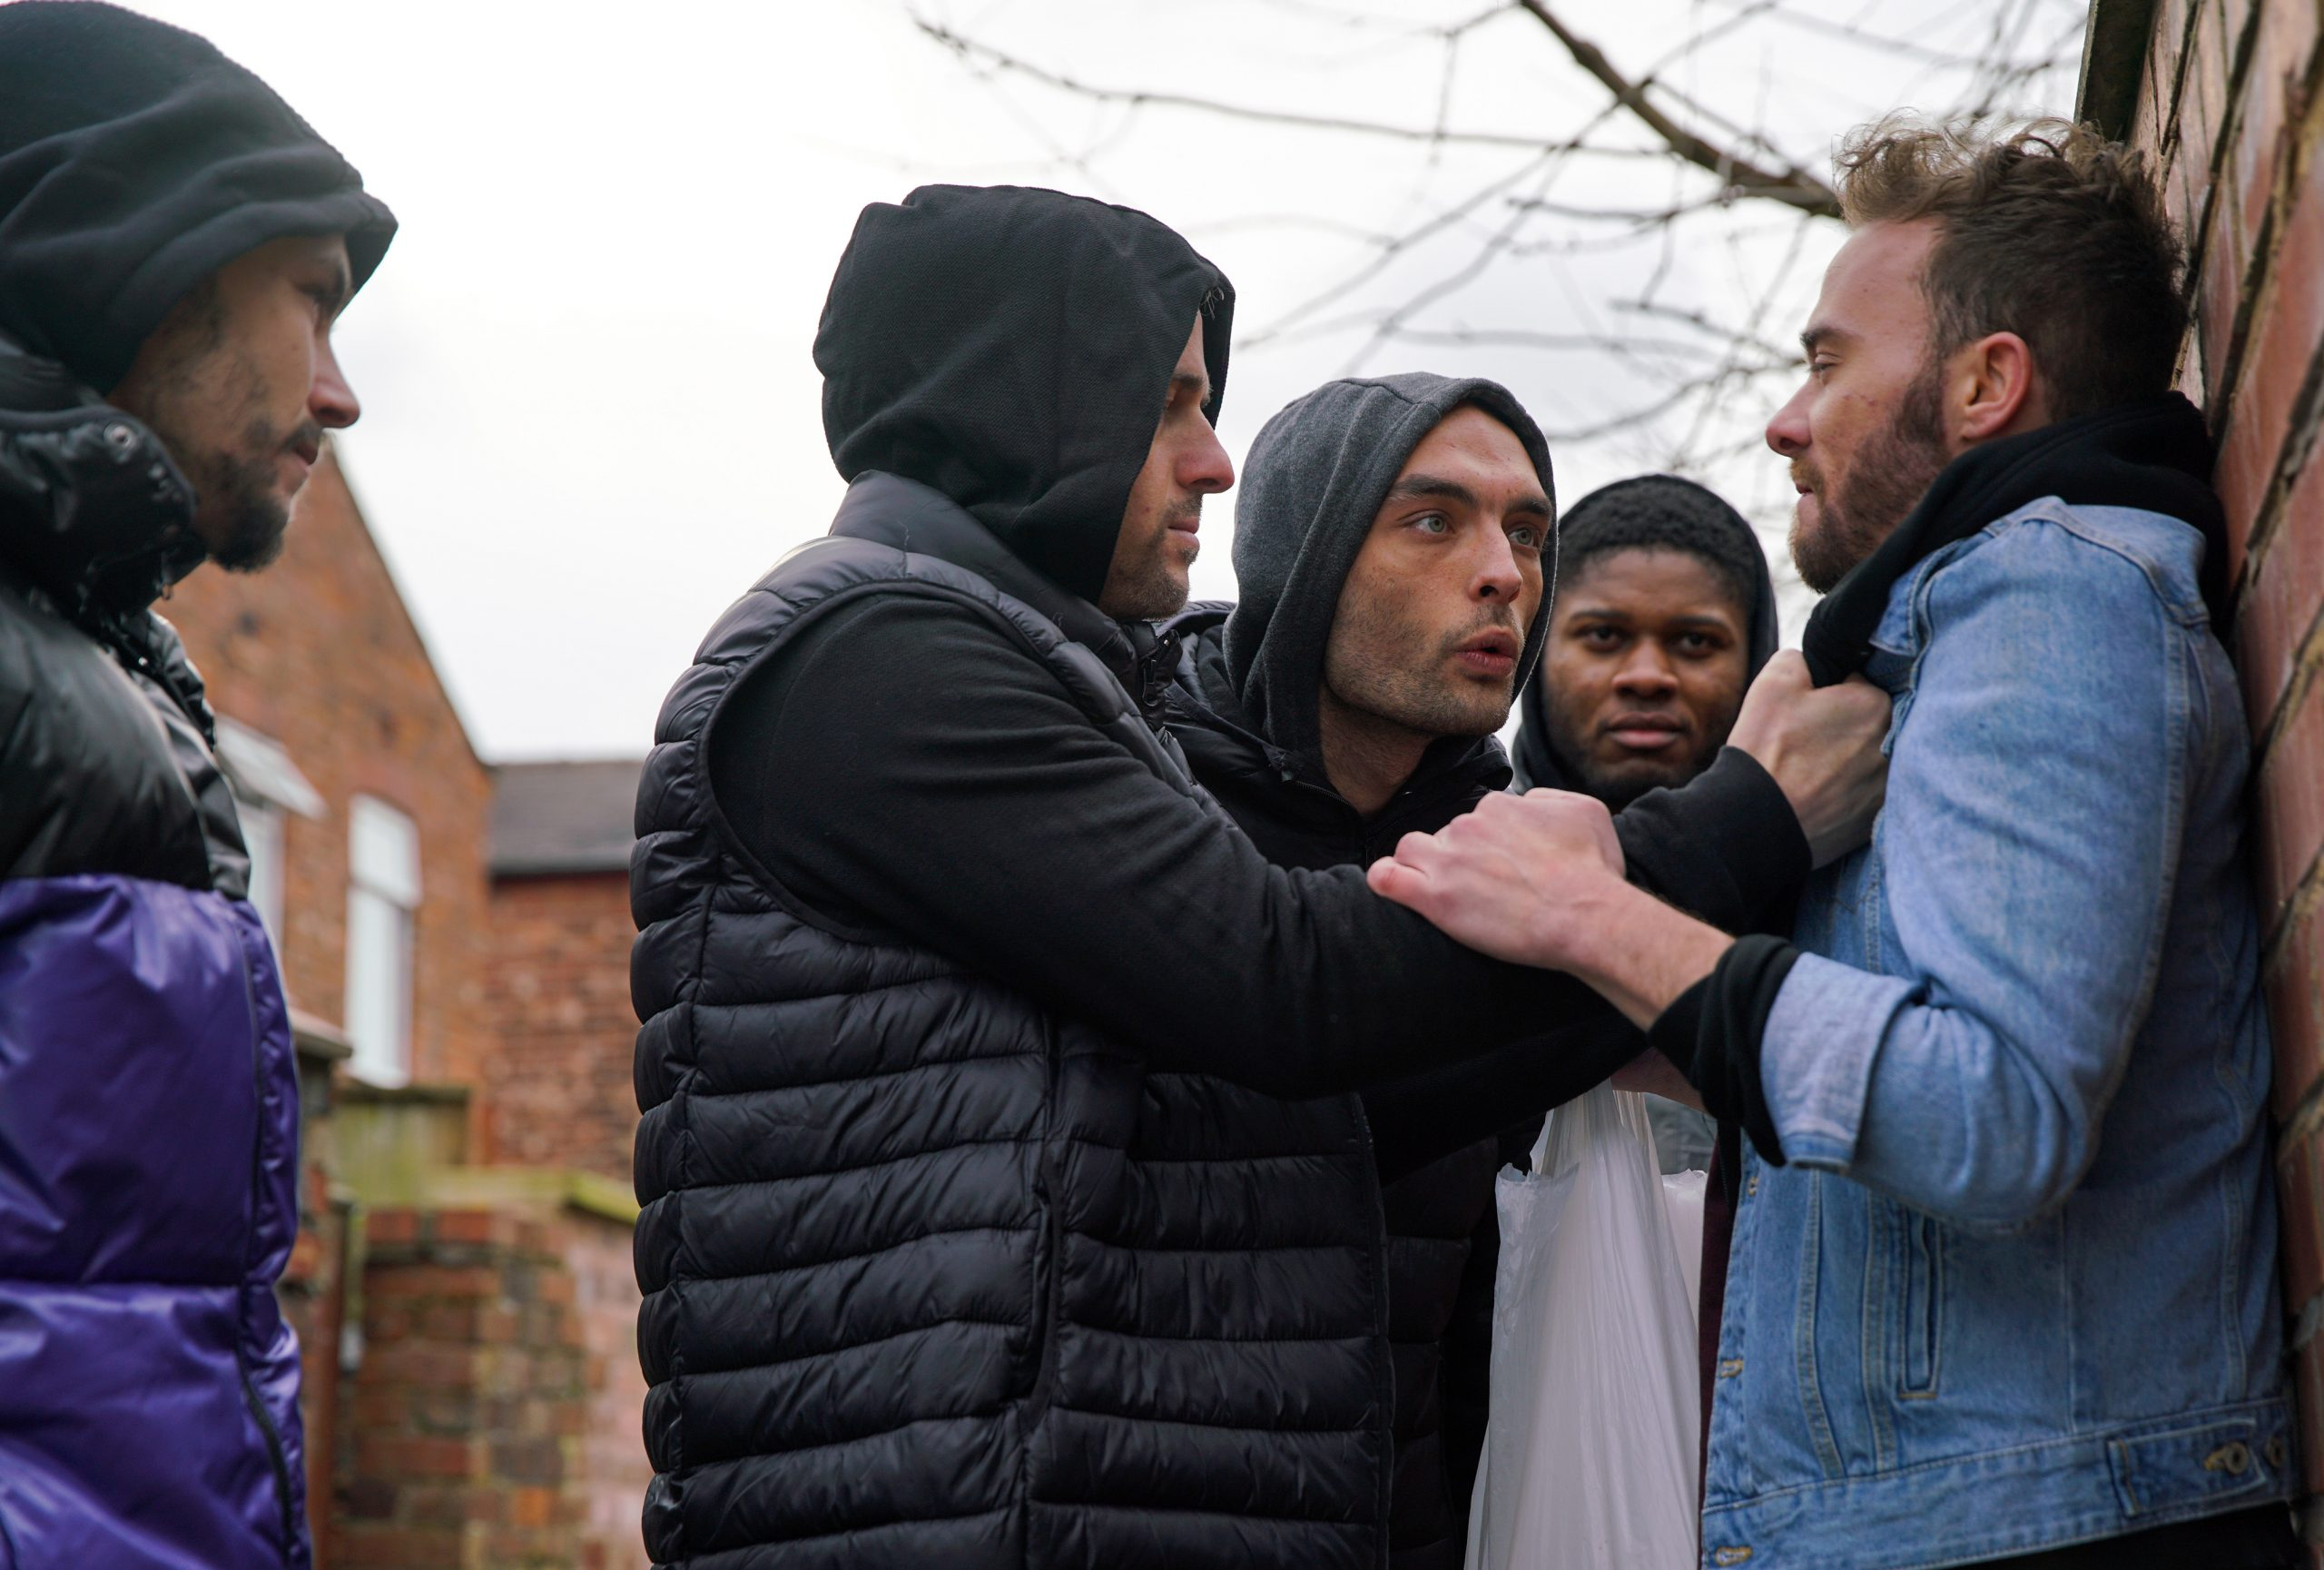 Coronation Street receives six Ofcom complaints over violent knife scenes